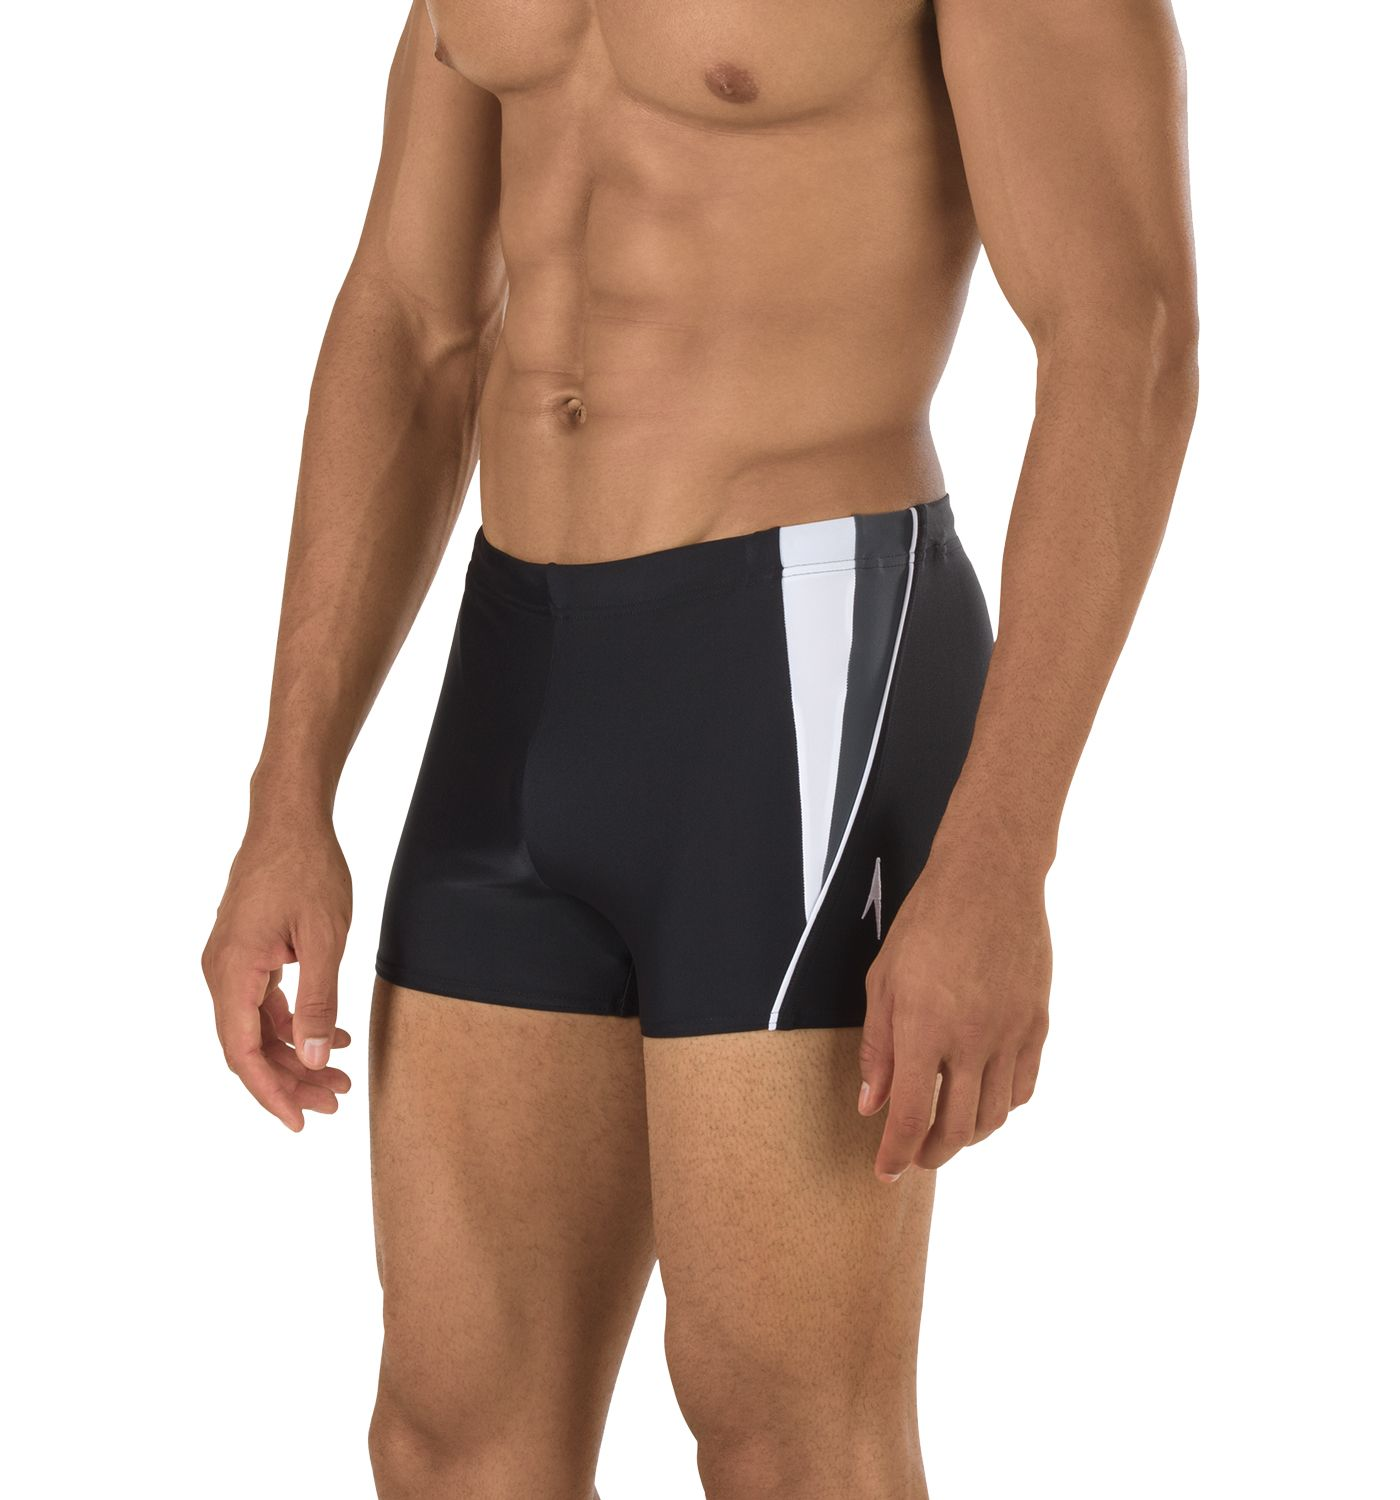 Speedo Men's Fitness Splice Square Leg